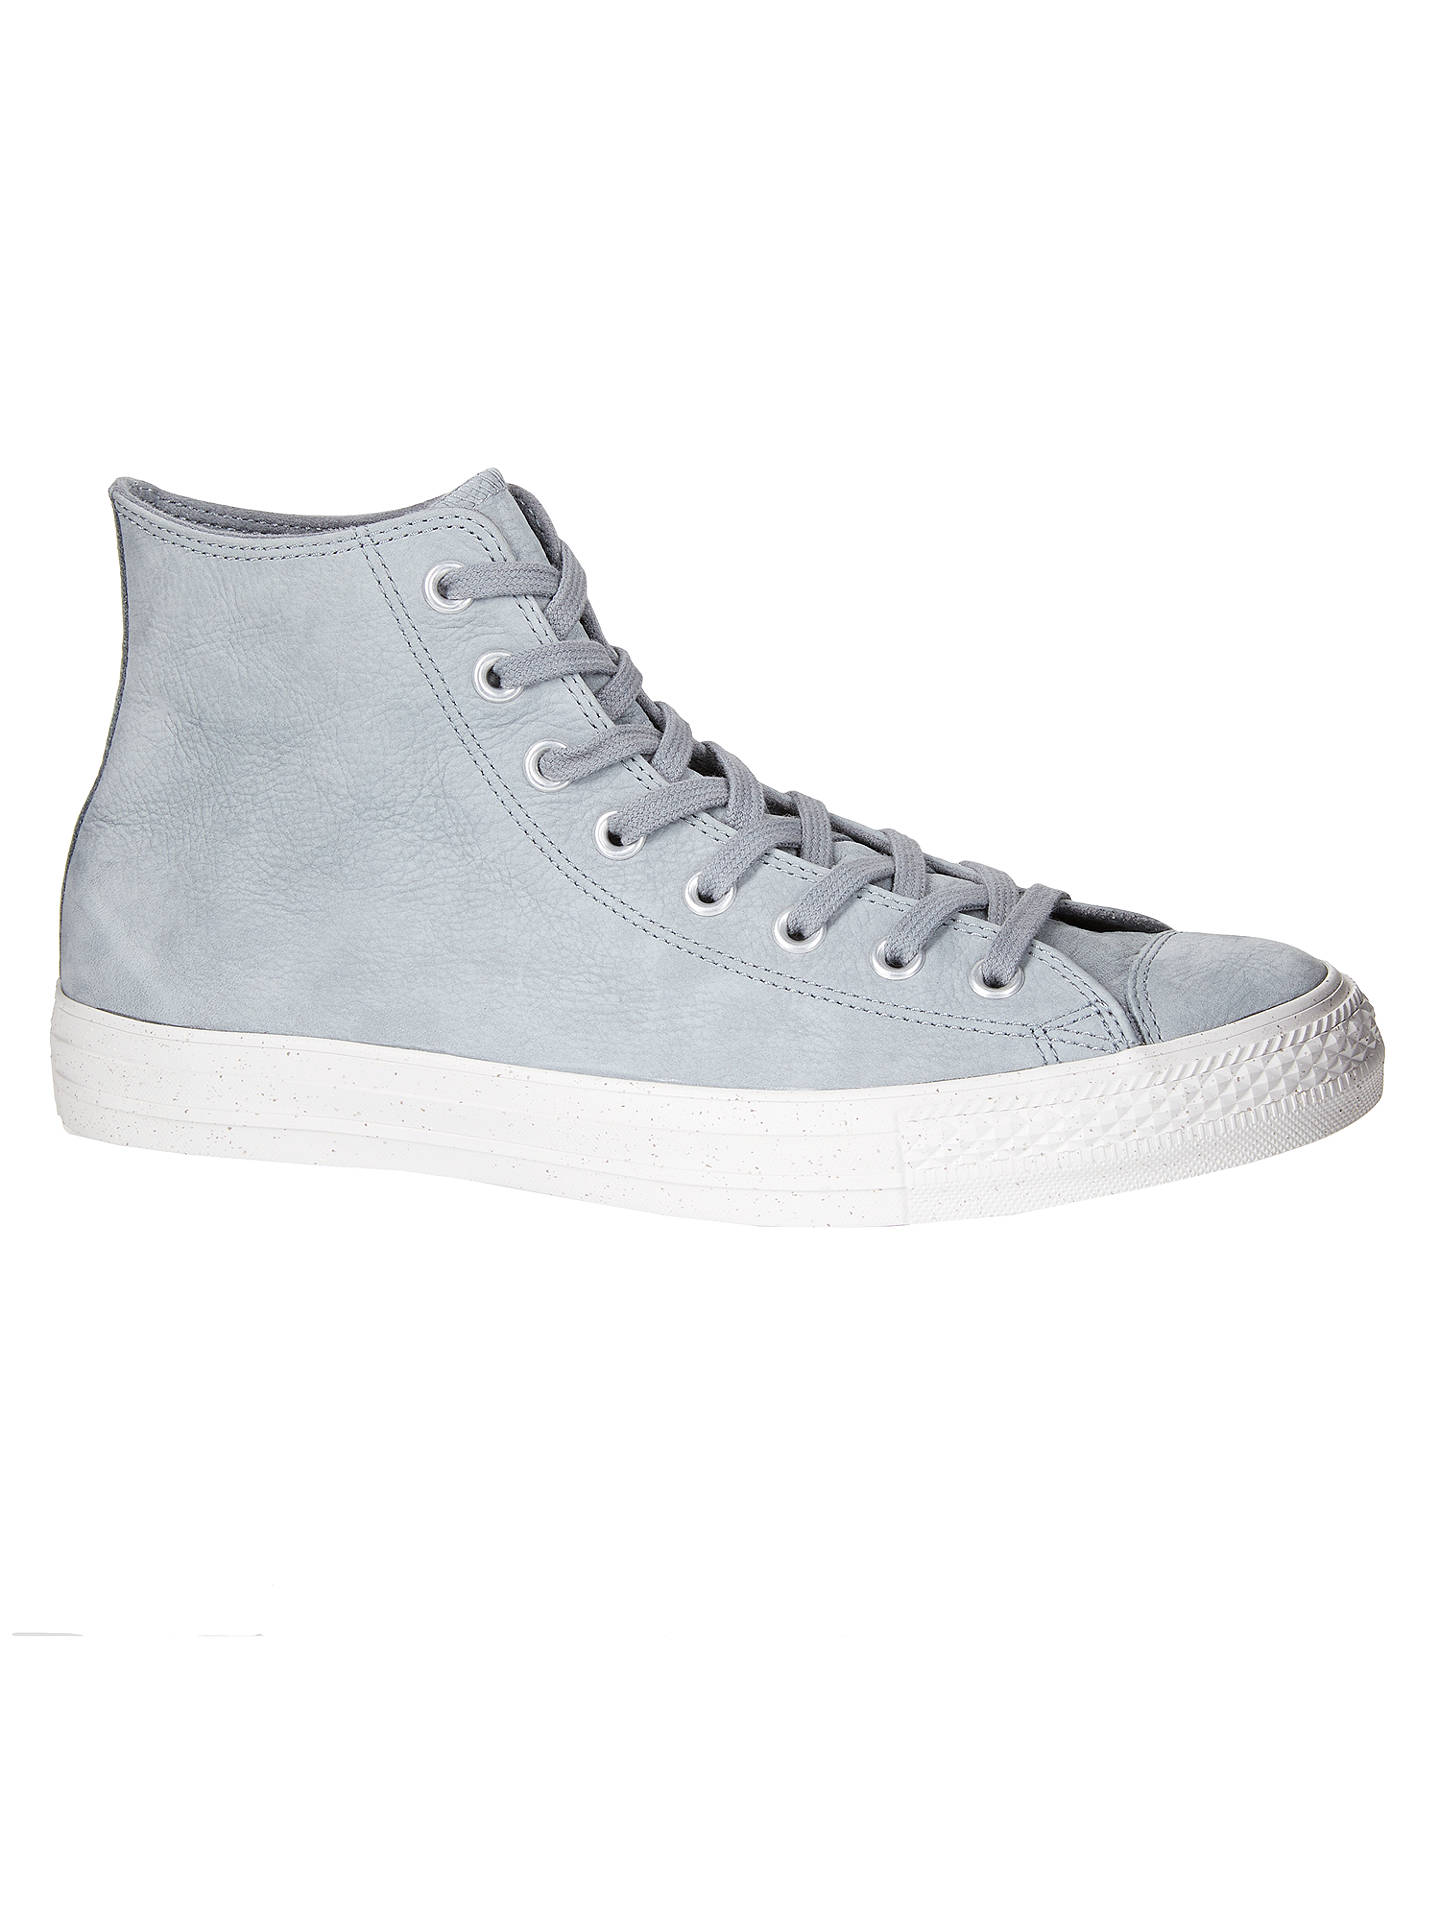 4d247655c48 Converse Chuck Taylor All Star Nubuck Hi-Top at John Lewis   Partners